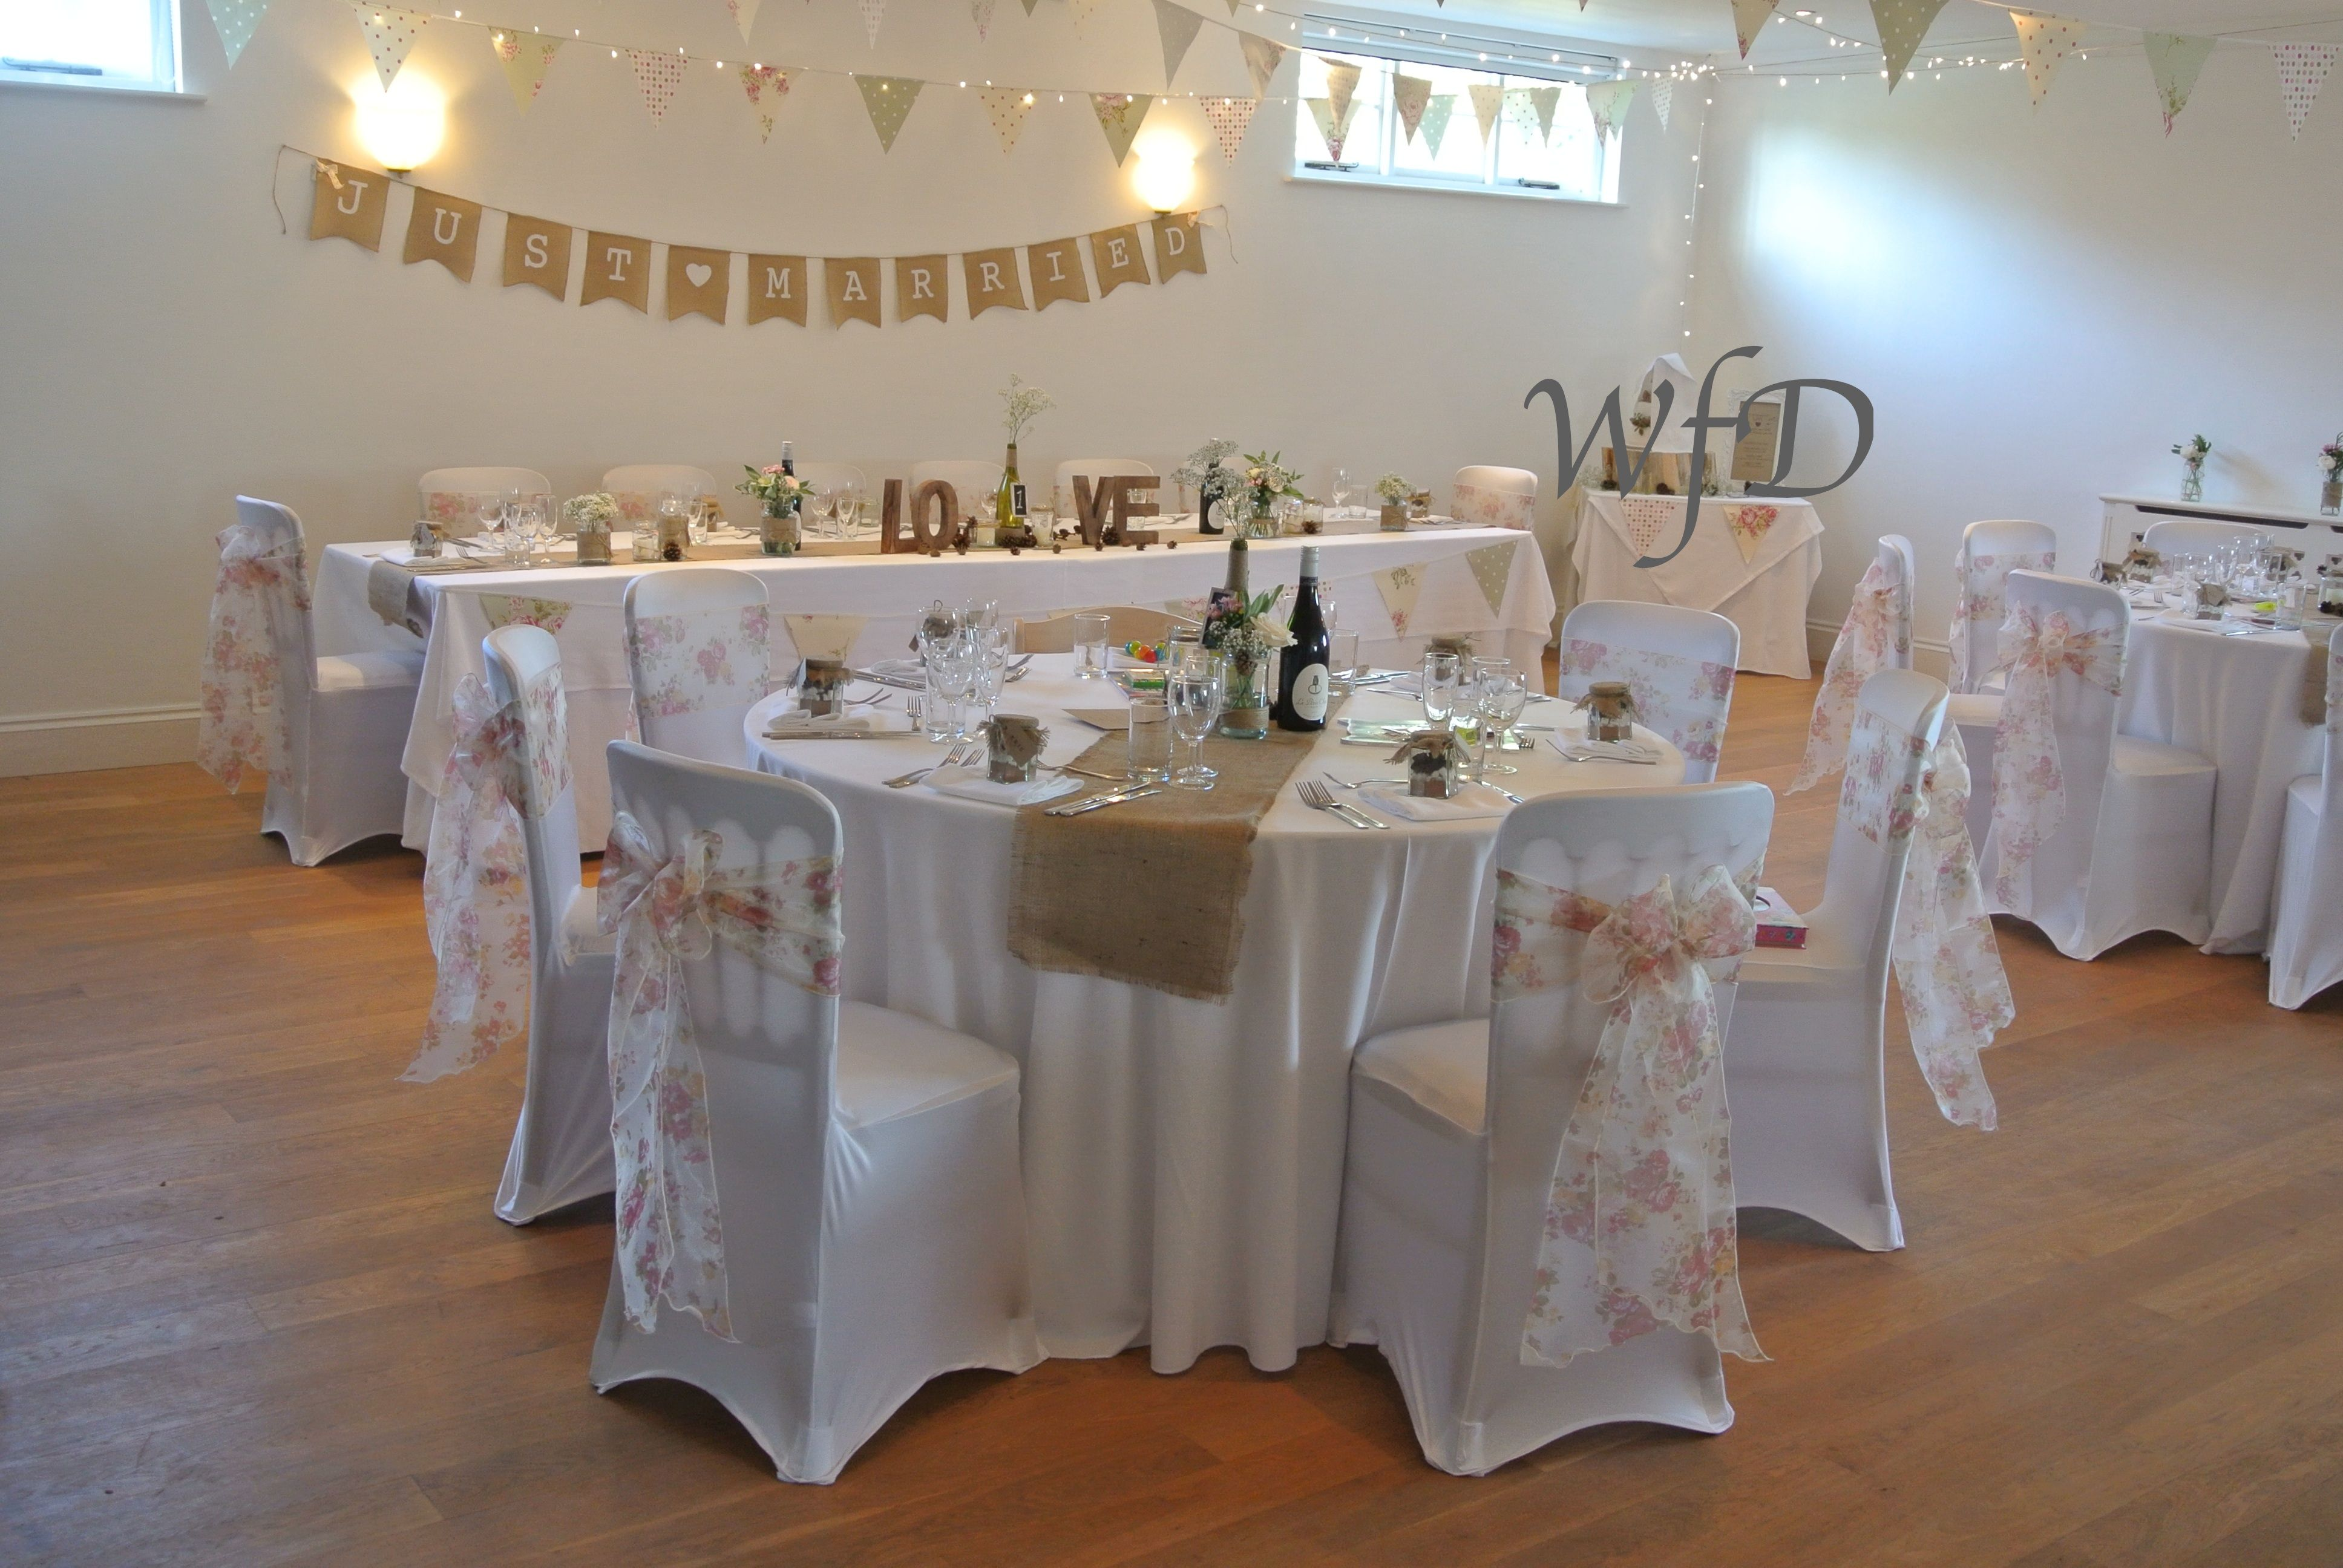 Wedding Chair Covers Devon Cream Recliner Kingston Estate Cover Sash Hire And Table Designs